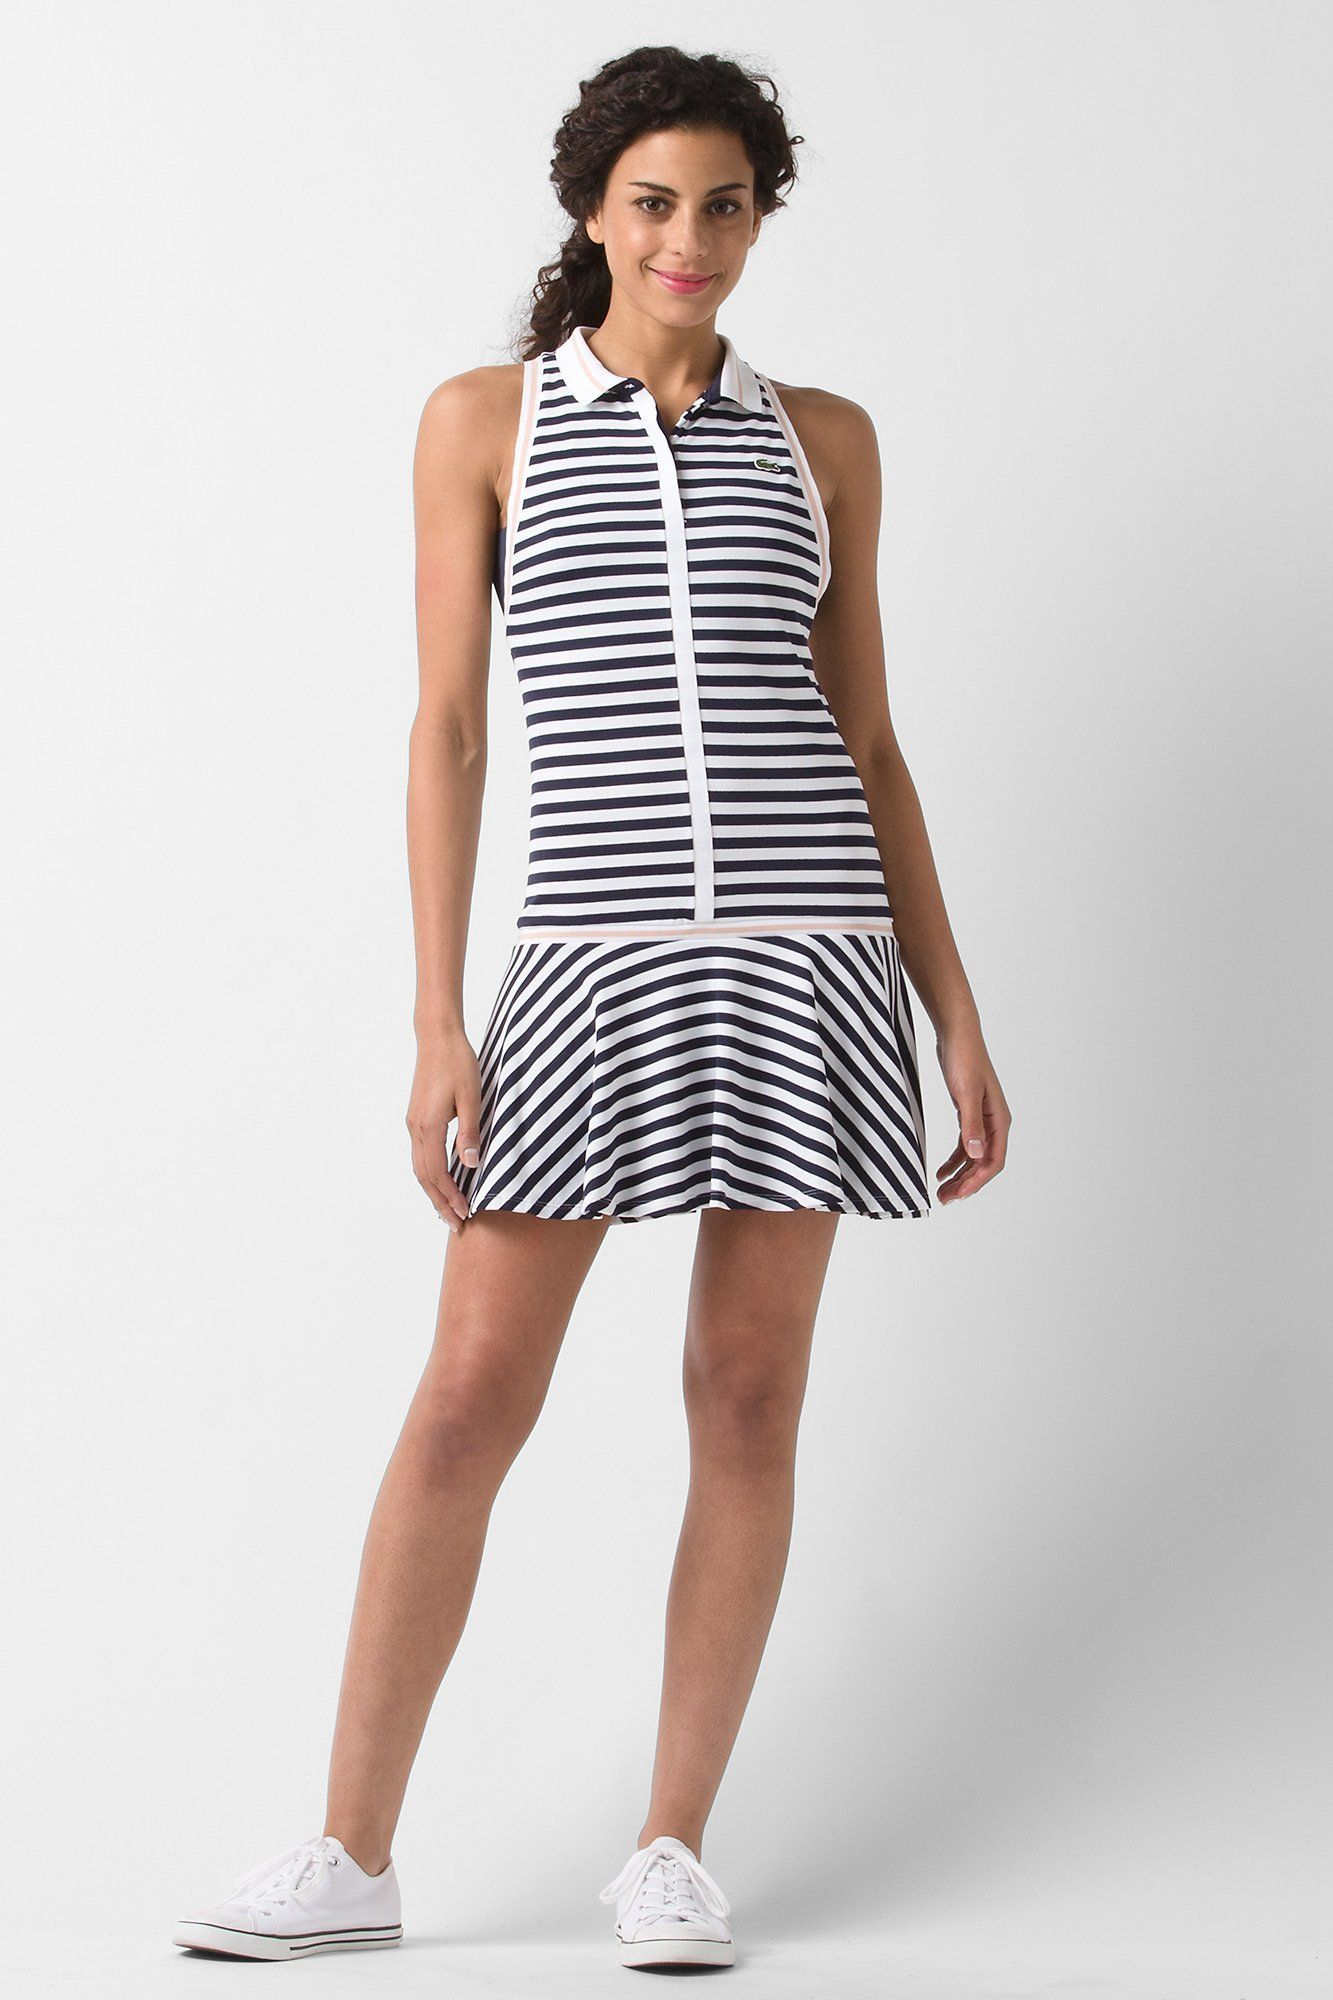 Lacoste Sleeveless Technical Pique Pleated Tennis Dress Dresses Pleated Tennis Dress Tennis Dress Clothes